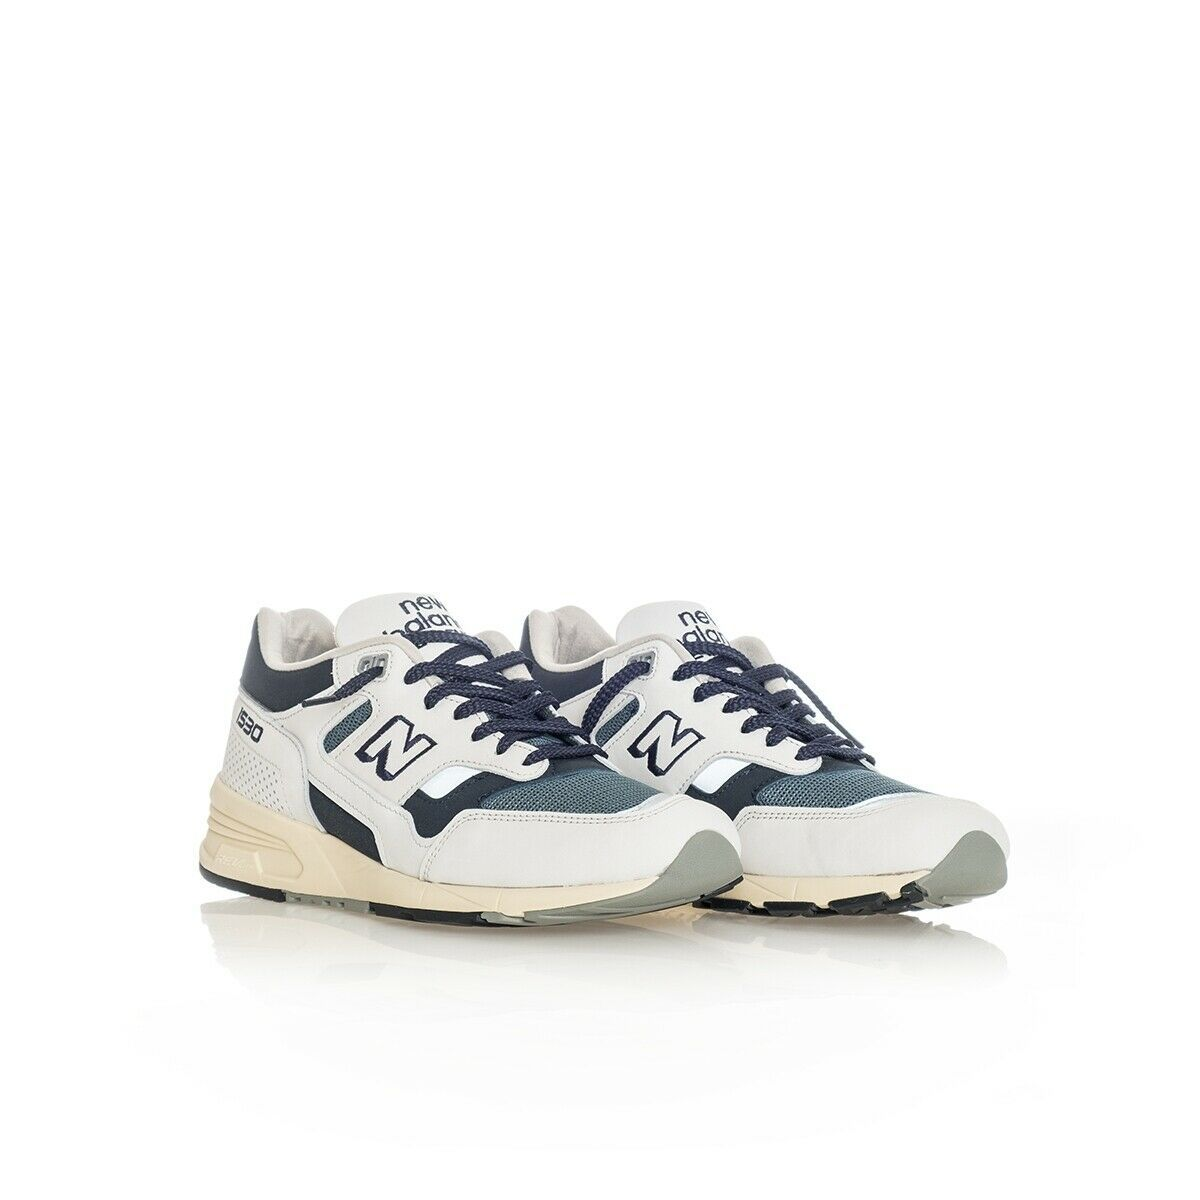 SNEAKERS UOMO NEW BALANCE LIFESTYLE  M1530OGG UK SHOES MEN CASUAL SNKRSROOM GRIG